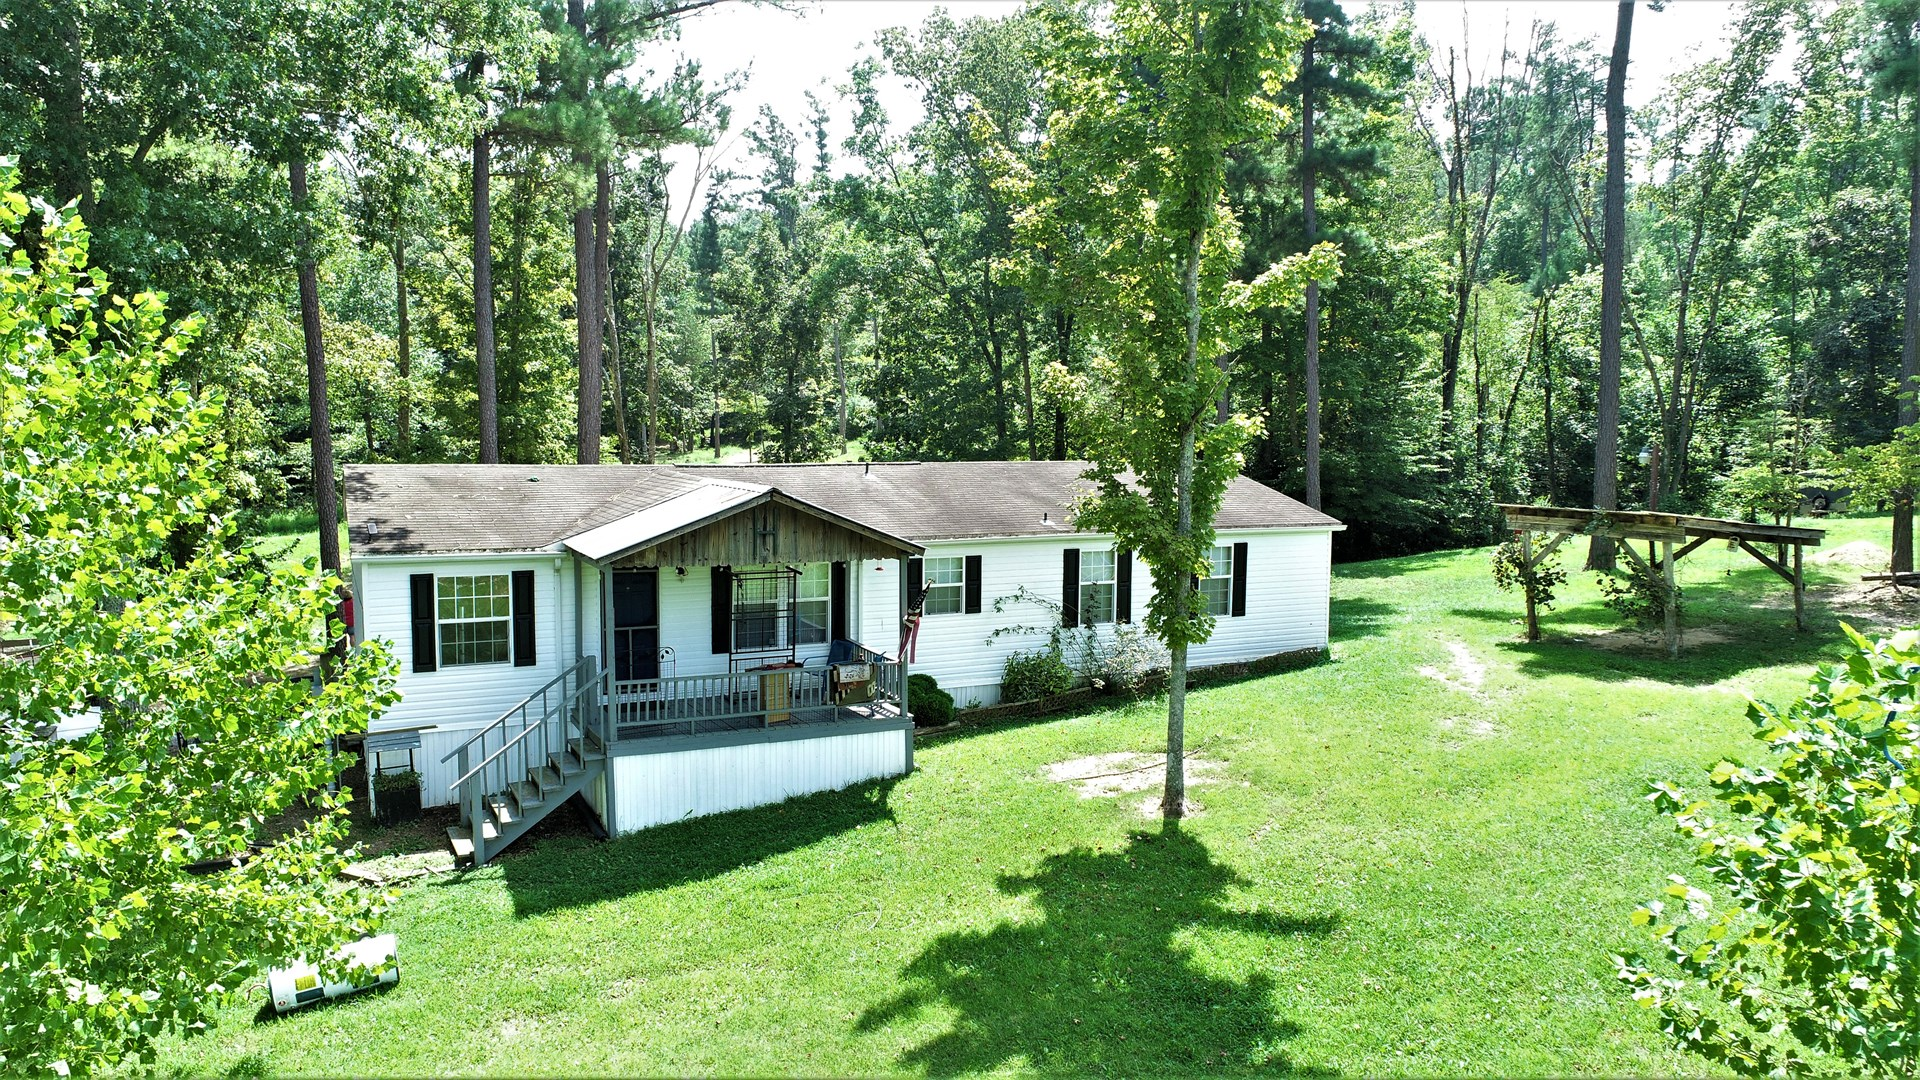 Country Homes For Sale, with acreage in Metcalfe County, KY.